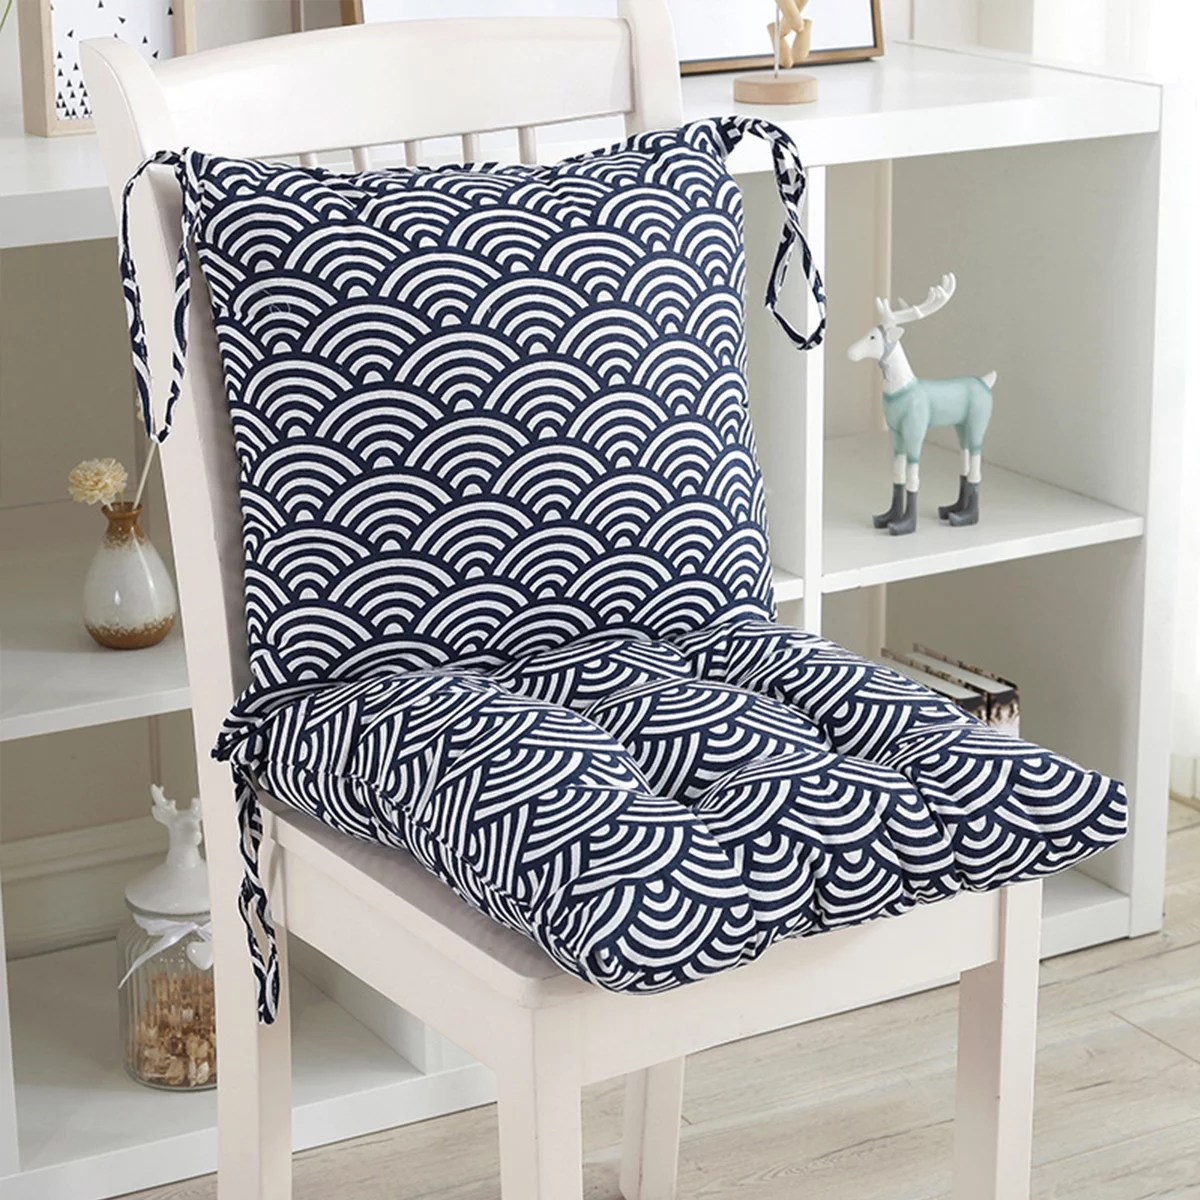 32 x 16 inch indoor outdoor chair cushion removable chair seat back cushion set for garden patio kitchen office